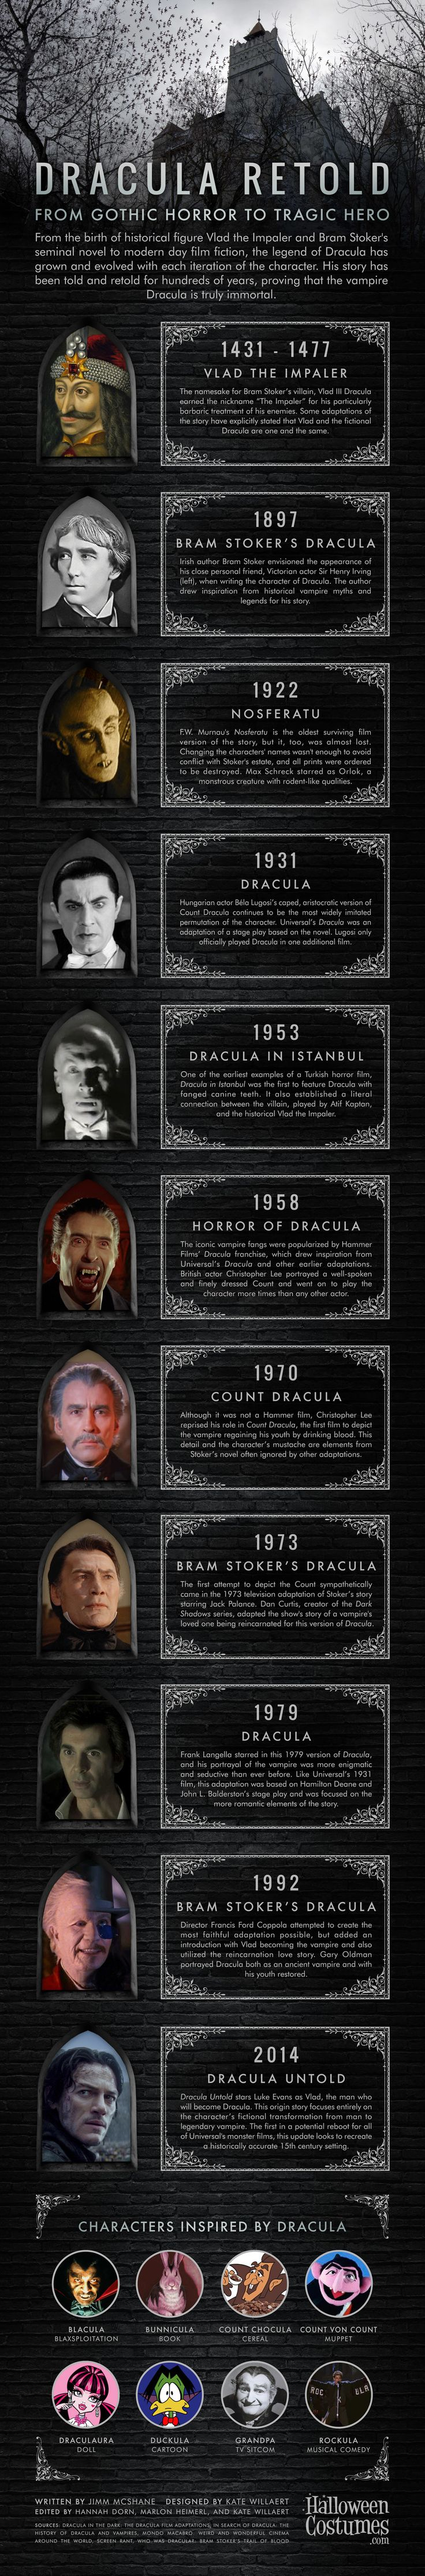 Dracula: From gothic horror to tragic hero. How did this happen? The Evil one may have been a man at one time but he is no more. Do not mistake him for a mere misunderstood man for it will cost you your everlasting soul.